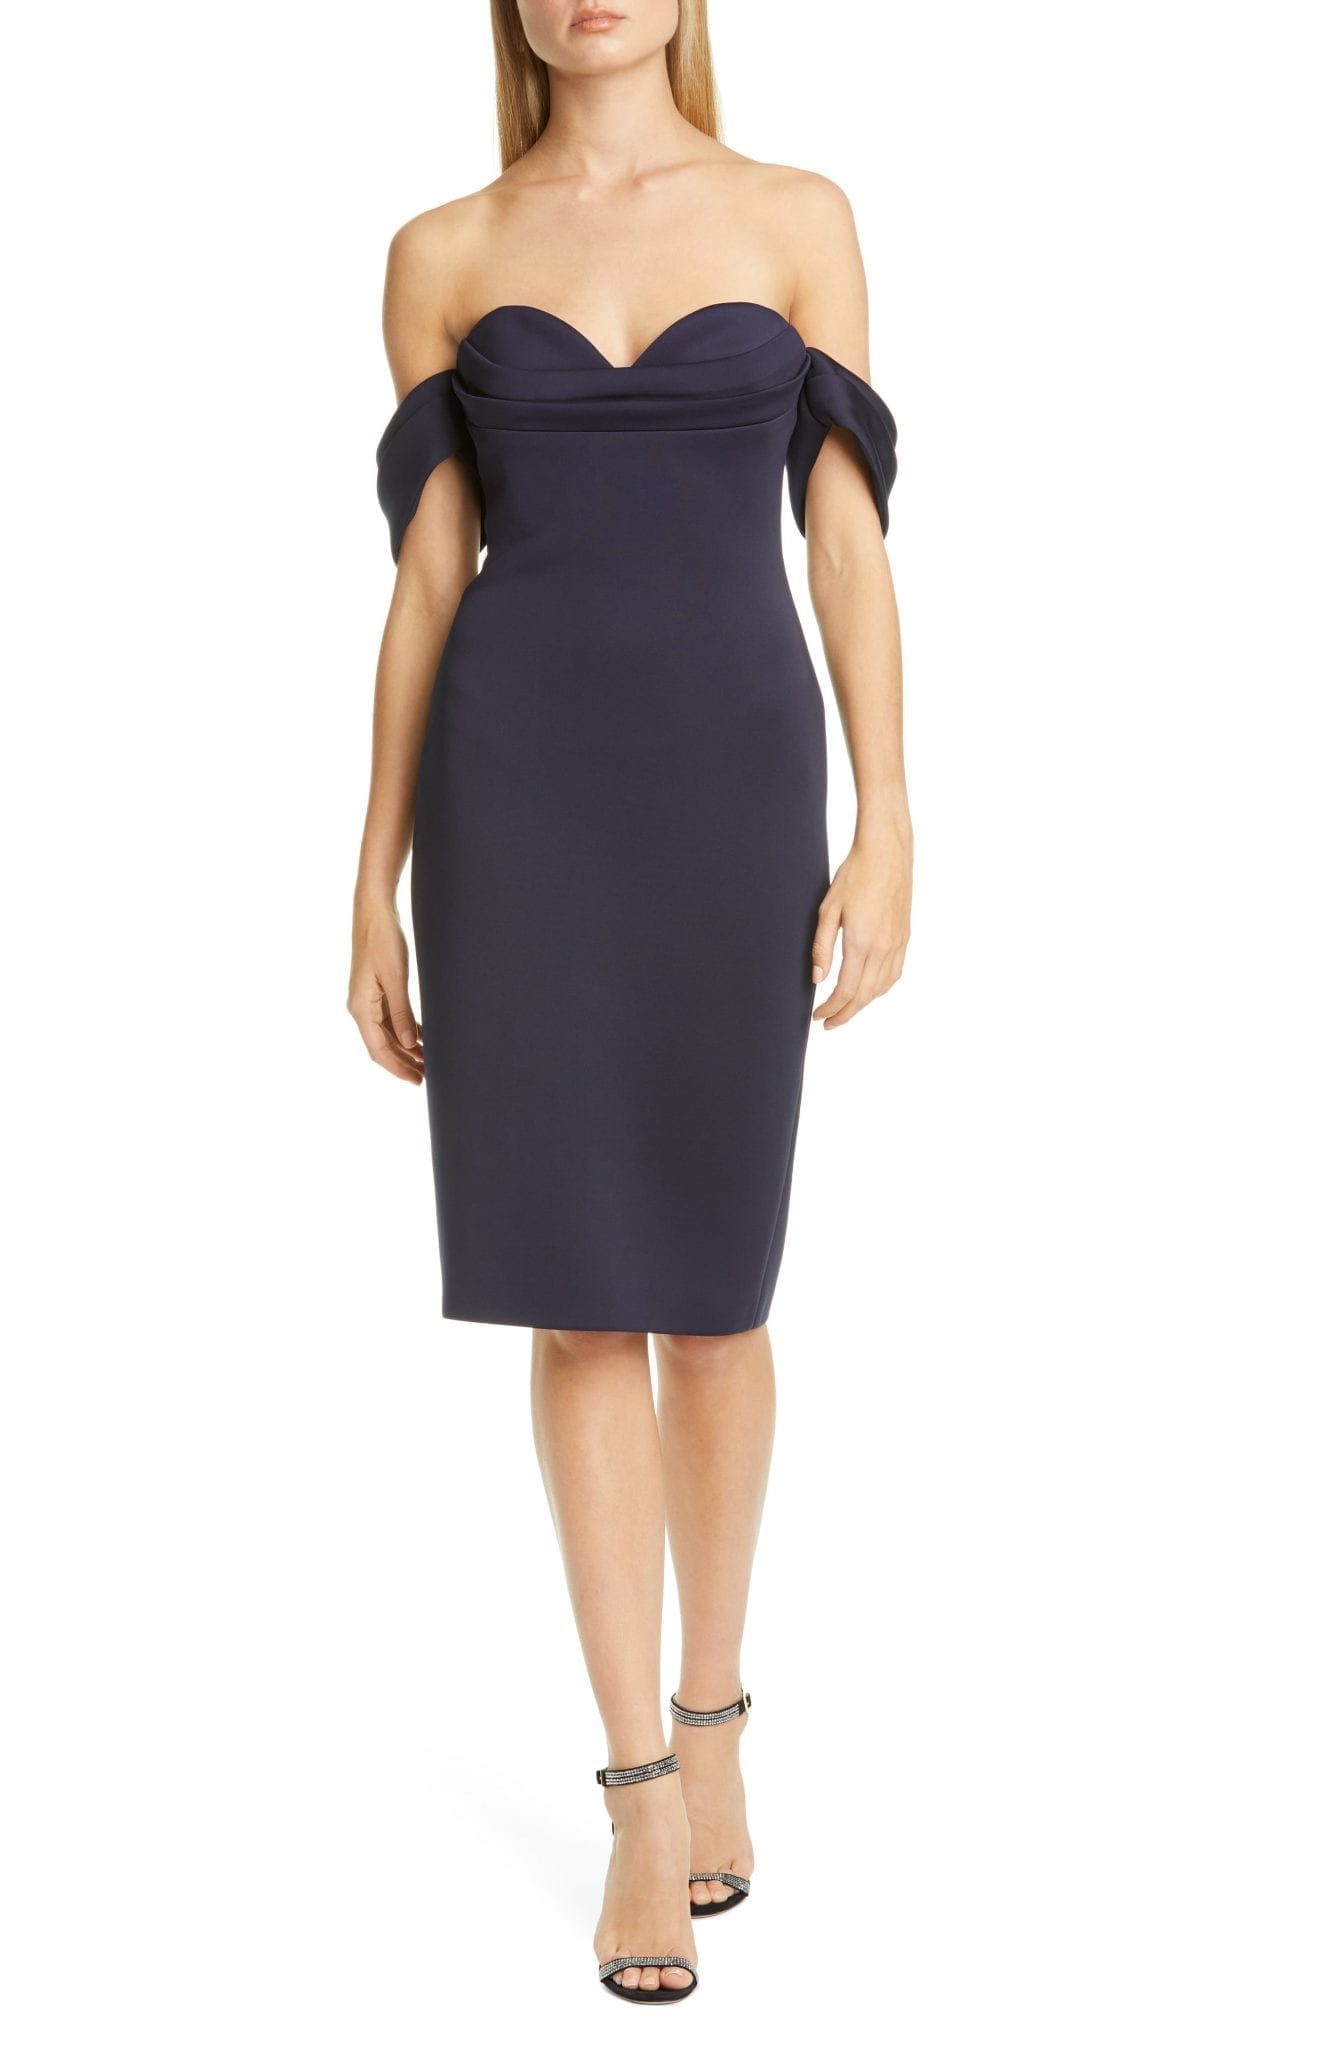 BADGLEY MISCHKA COLLECTION Badgley Mischka Off the Shoulder Cocktail Dress